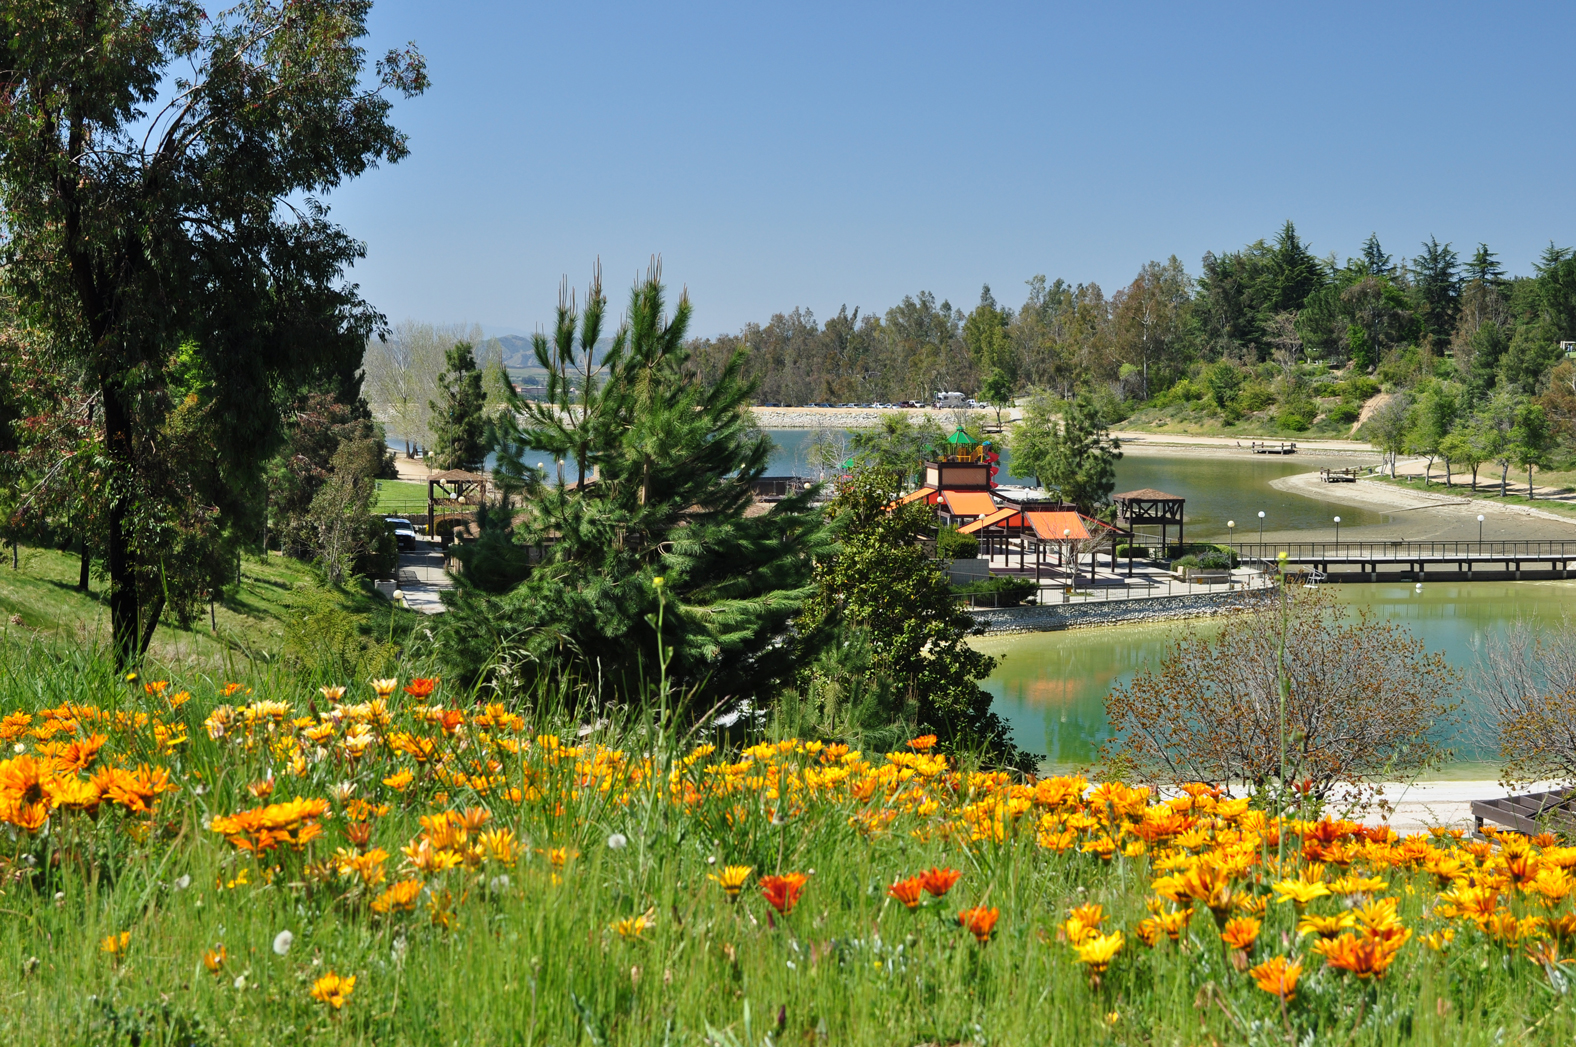 Flowers on hillside over looking lake